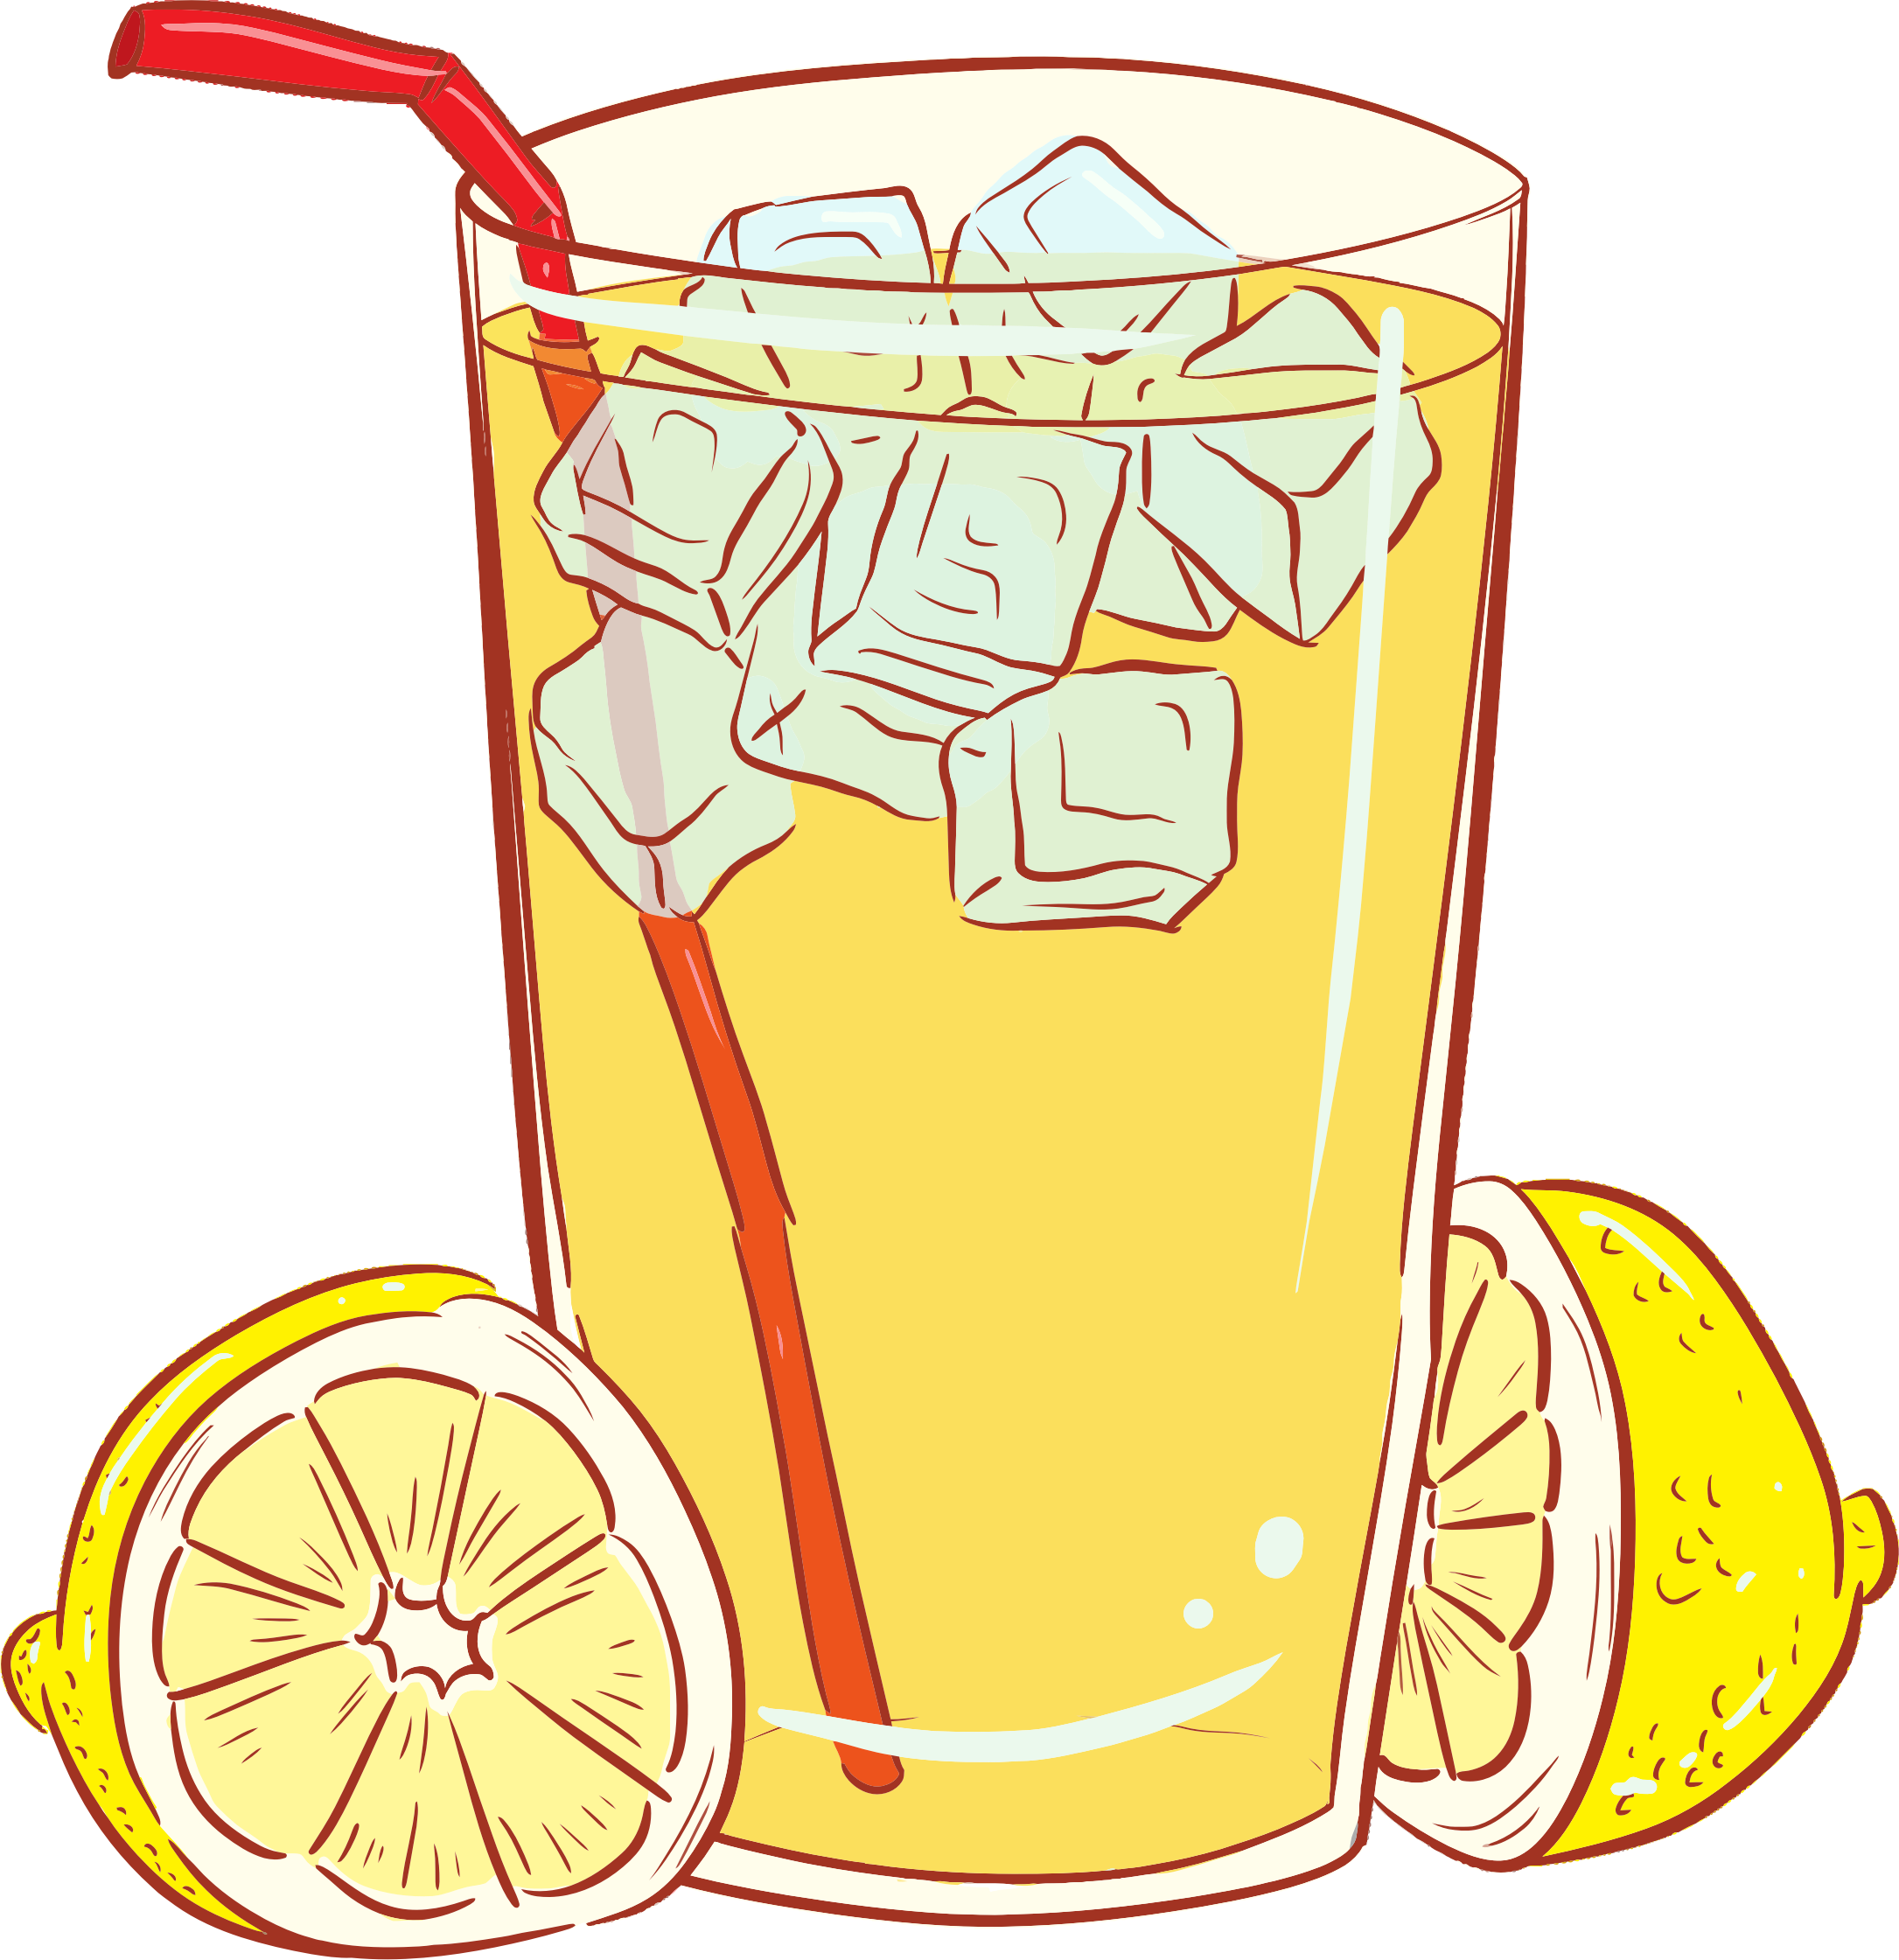 image free download Cold glass of big. Lemonade clipart black and white